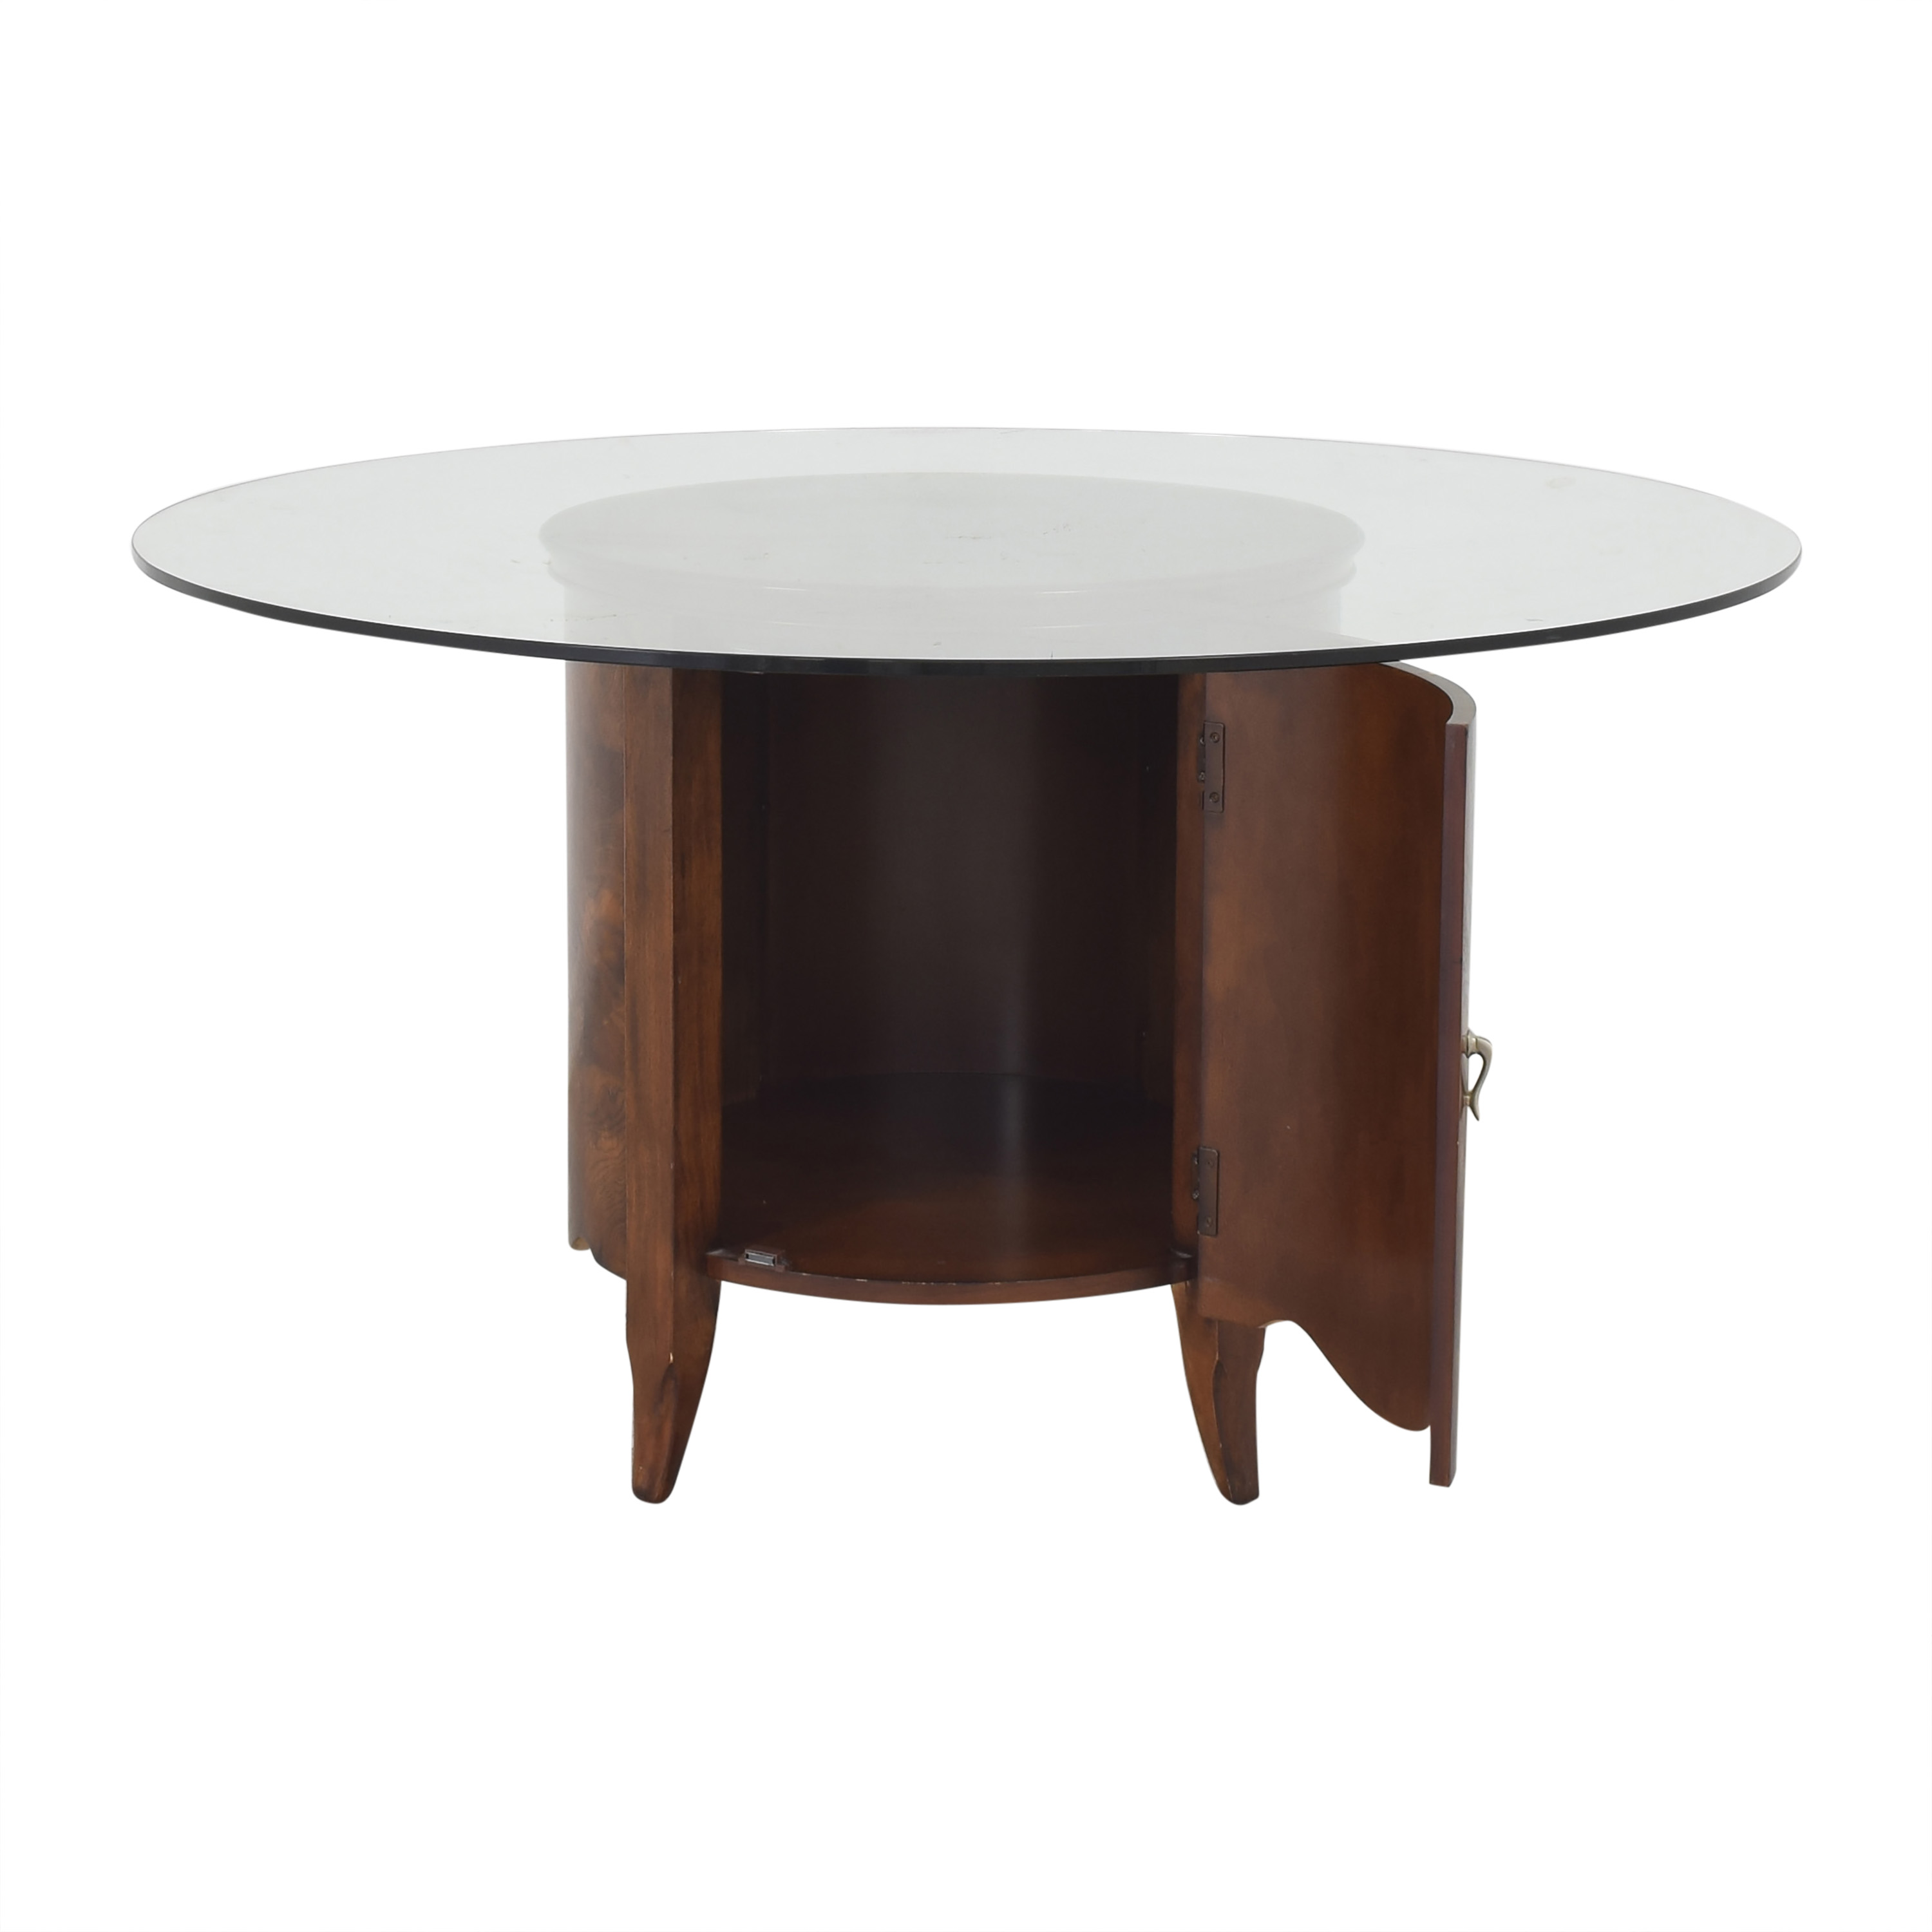 Raymour & Flanigan Raymour & Flanigan Round Dining Table pa